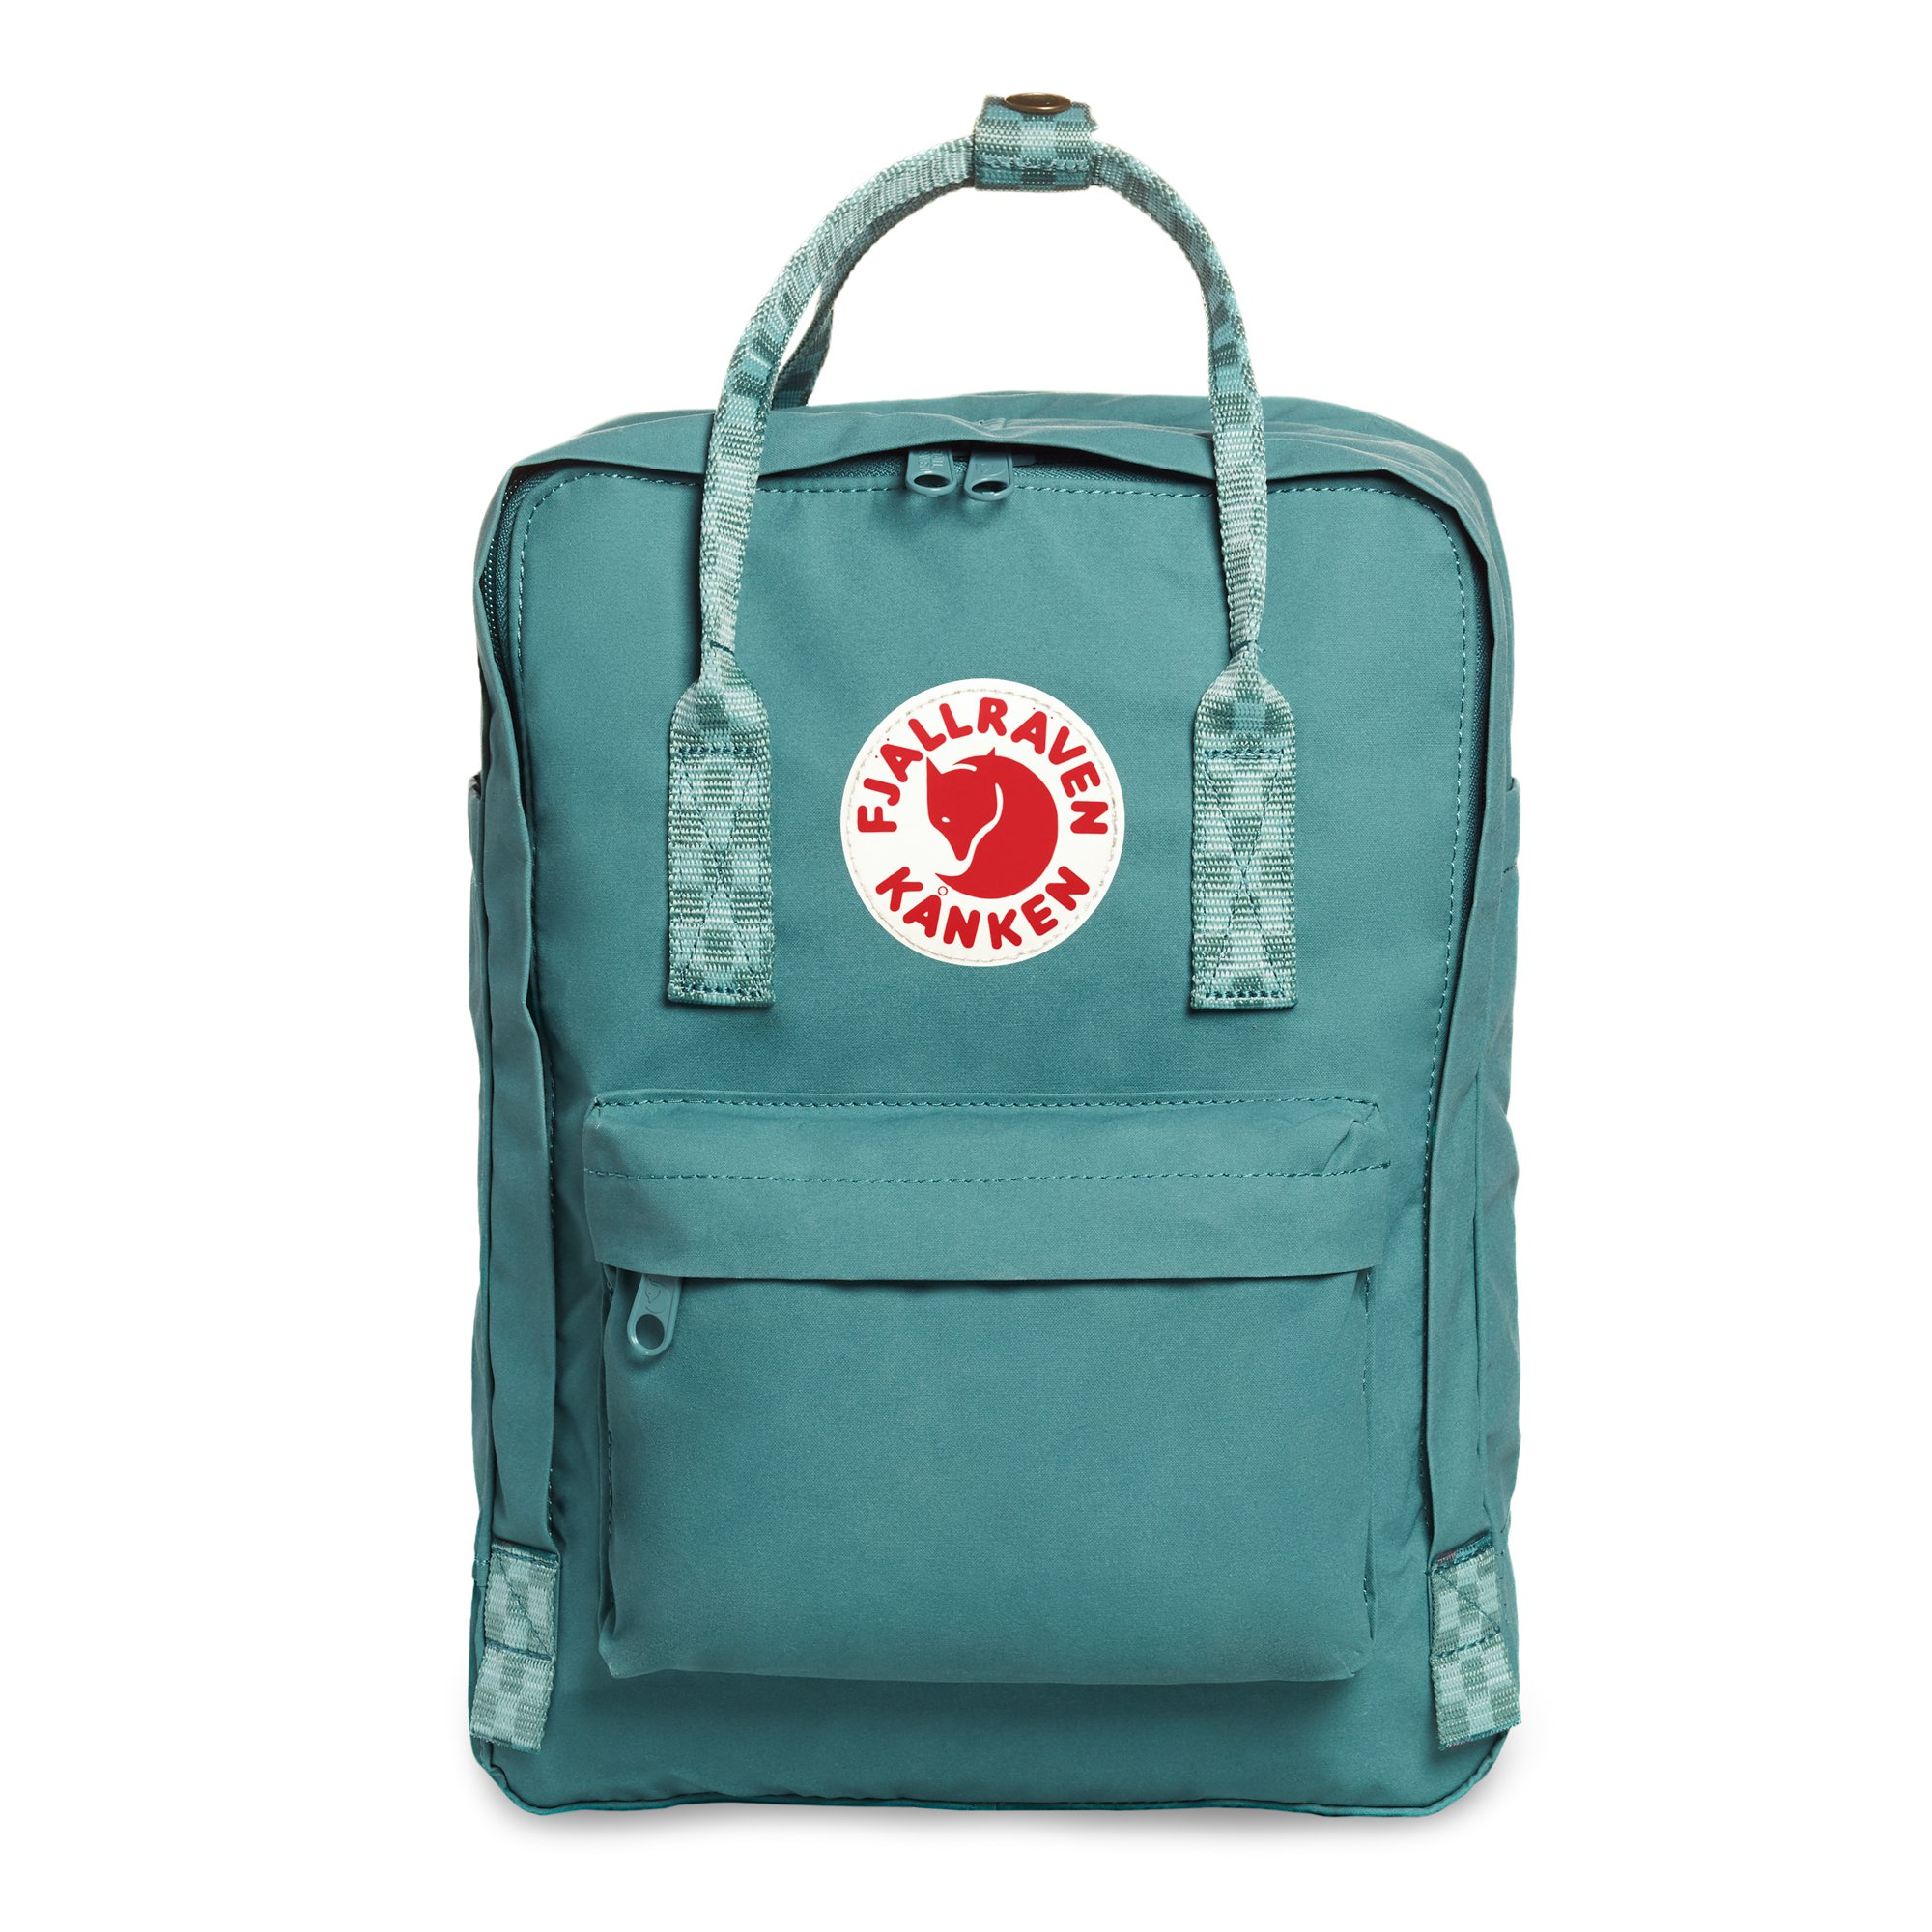 819239780 Galleon - Fjallraven - Kanken Laptop 13